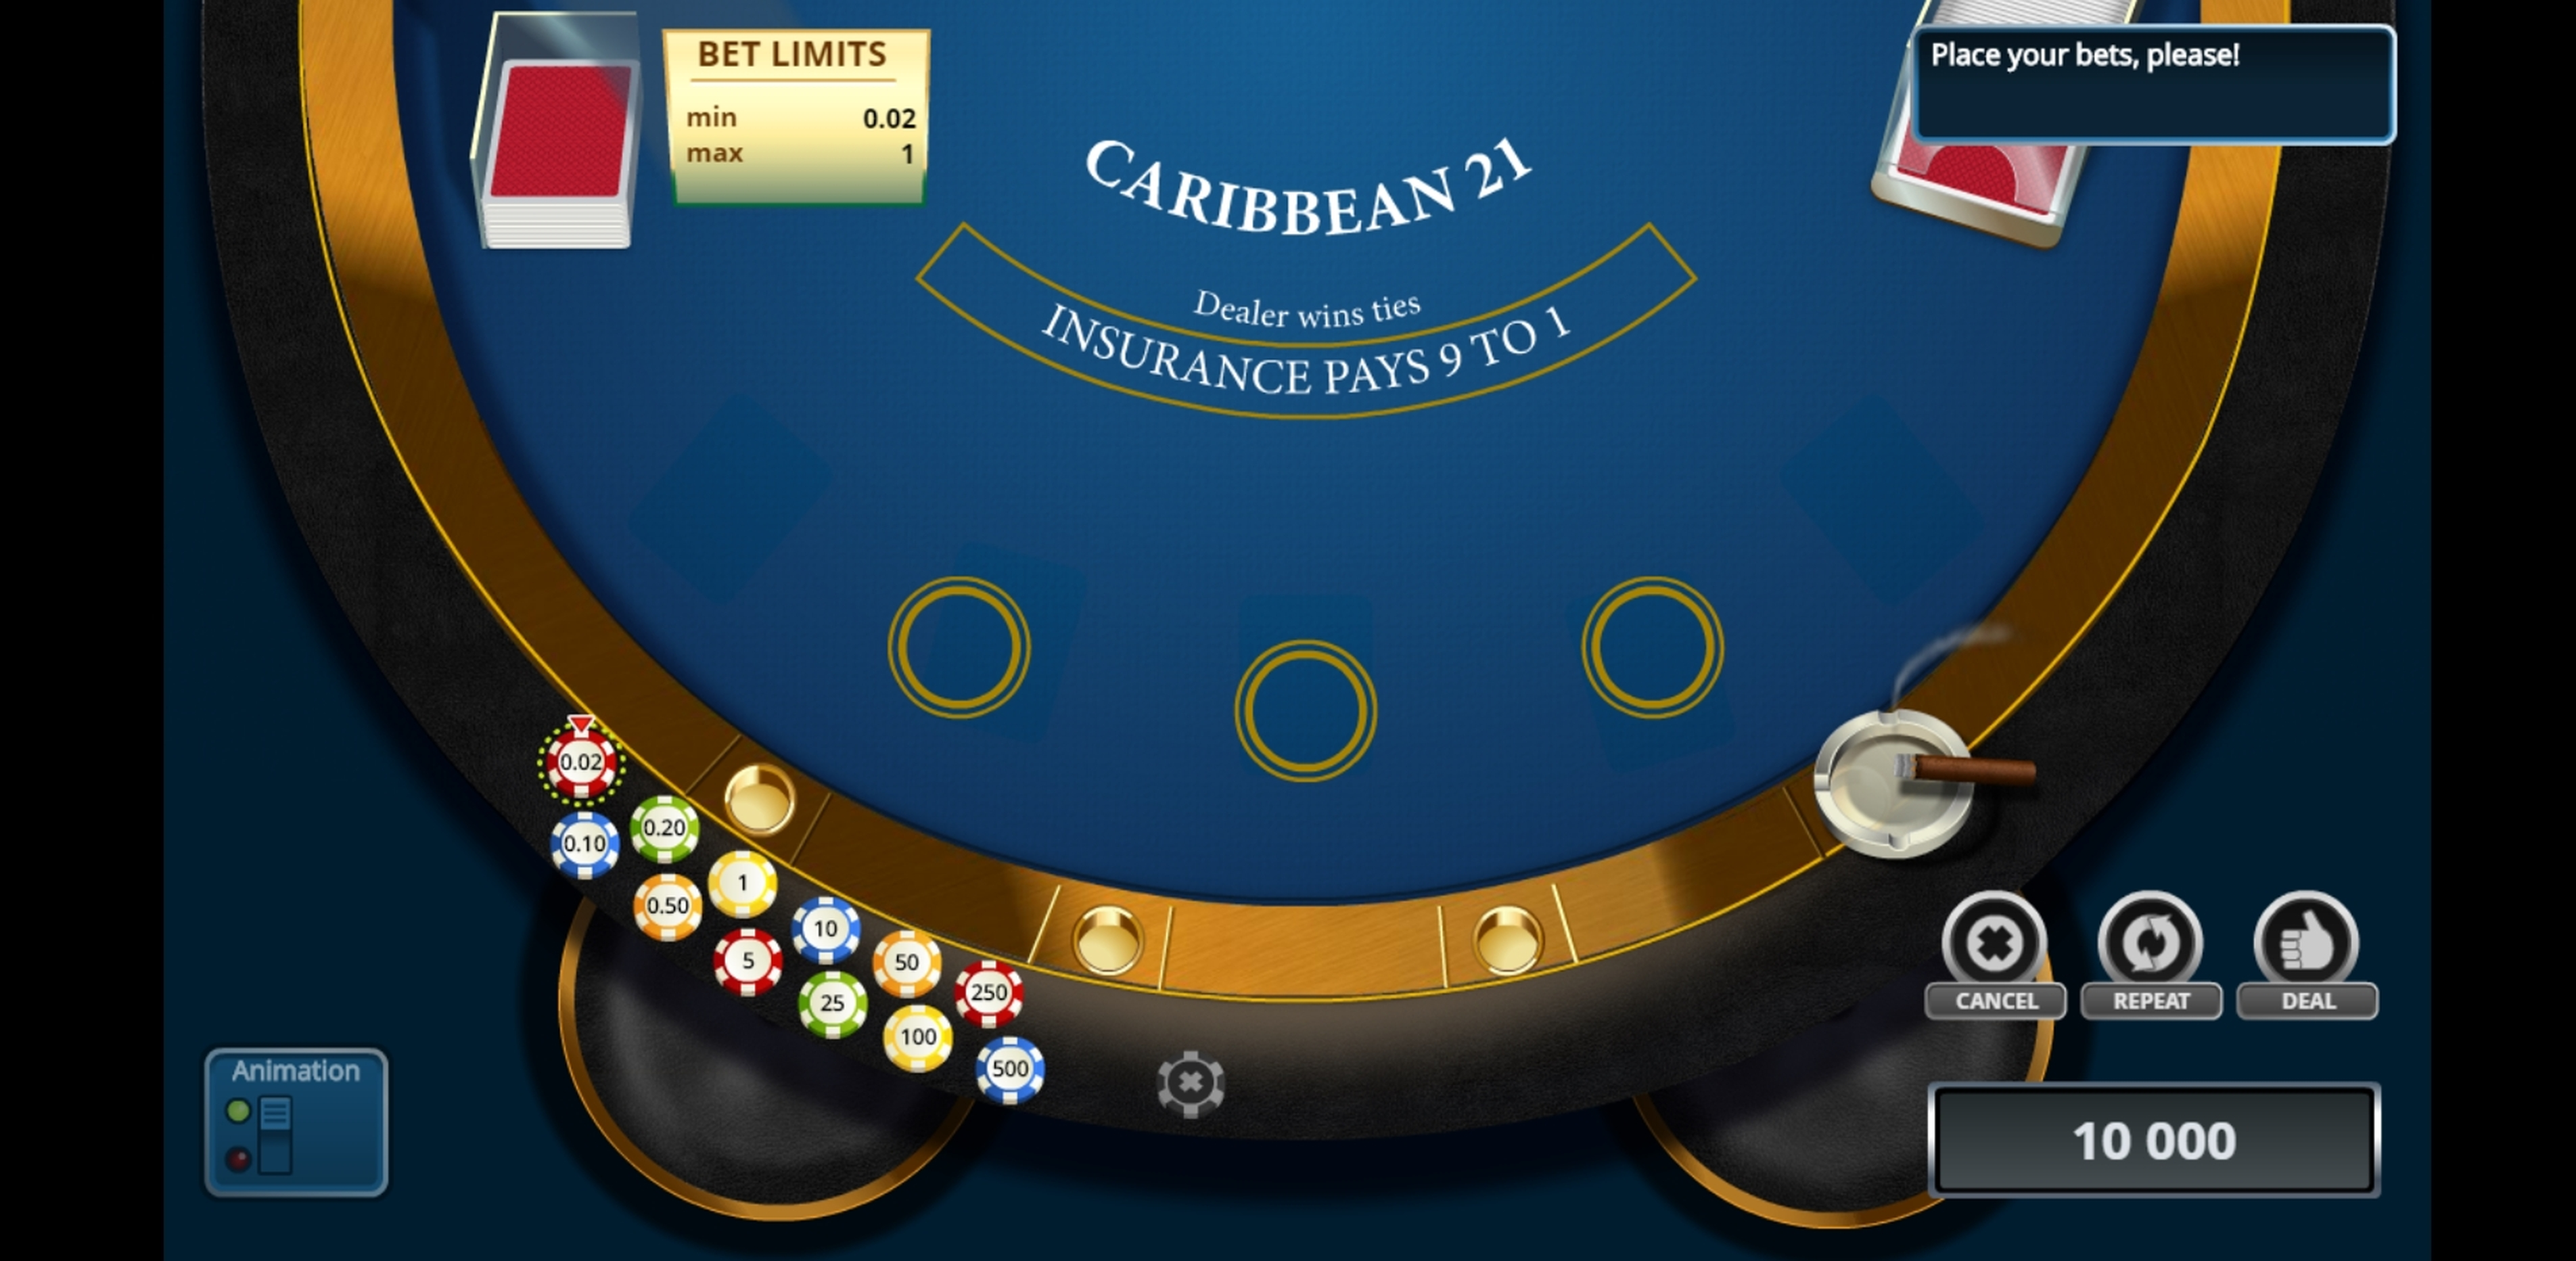 Reels in Caribbean Blackjack (Novomatic) Slot Game by Novomatic